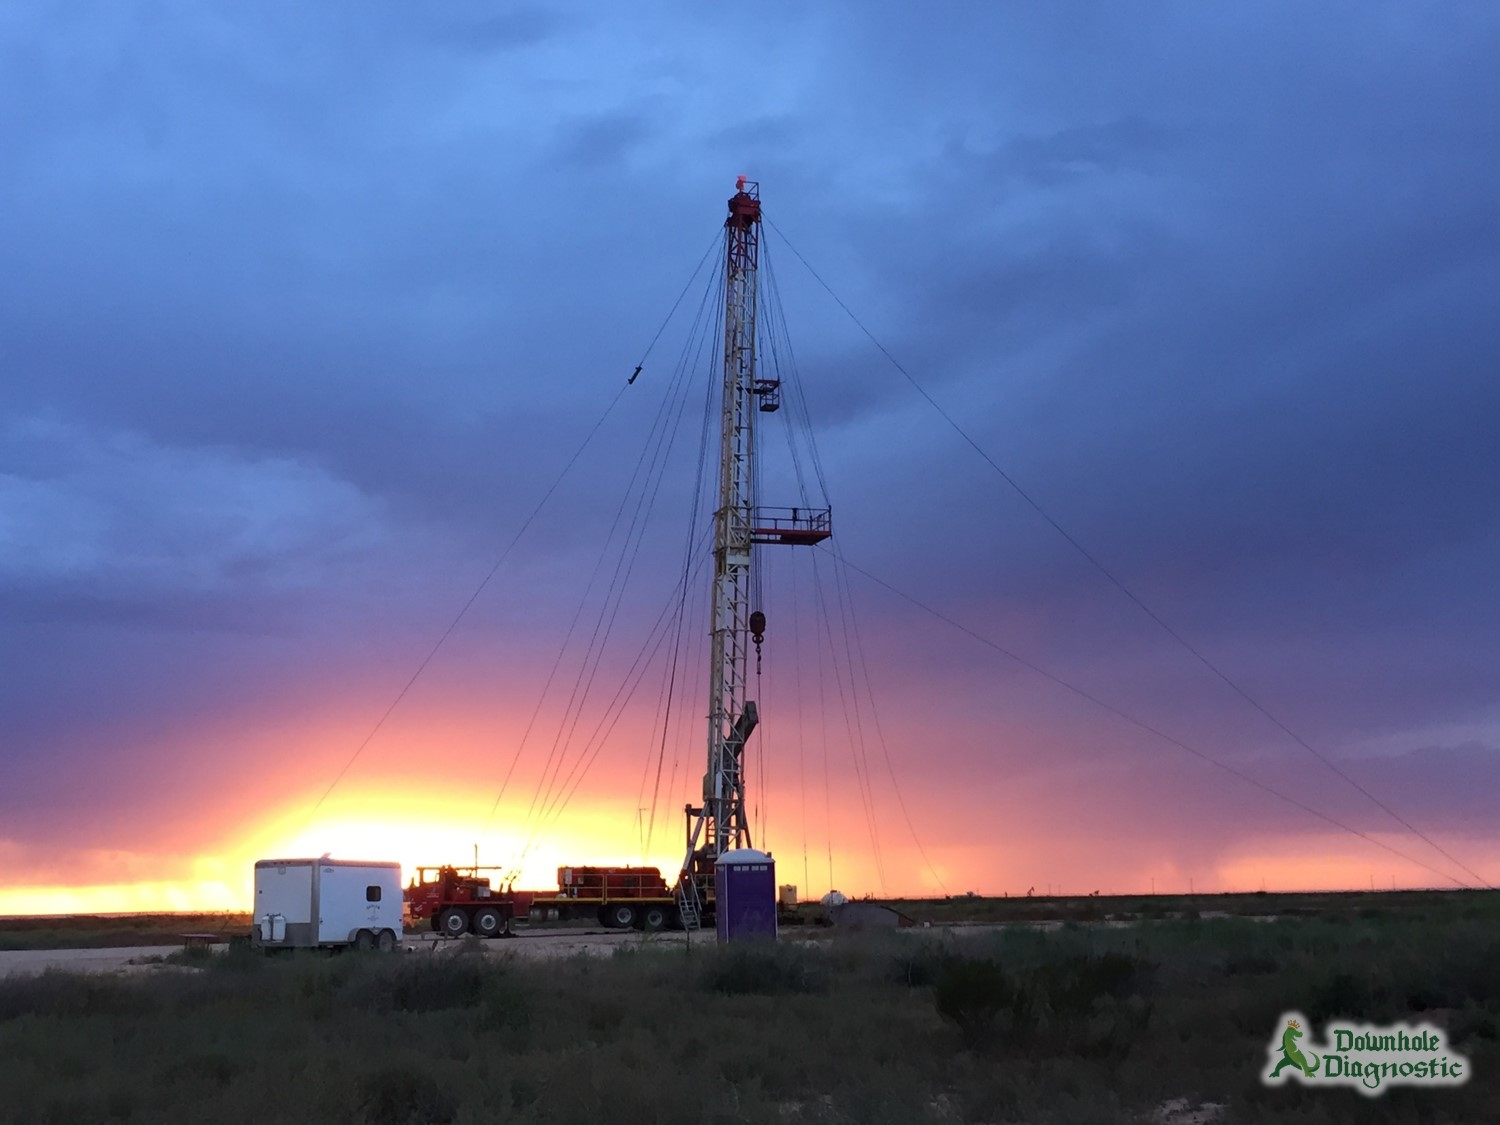 Sunset on Pecos Pulling Unit